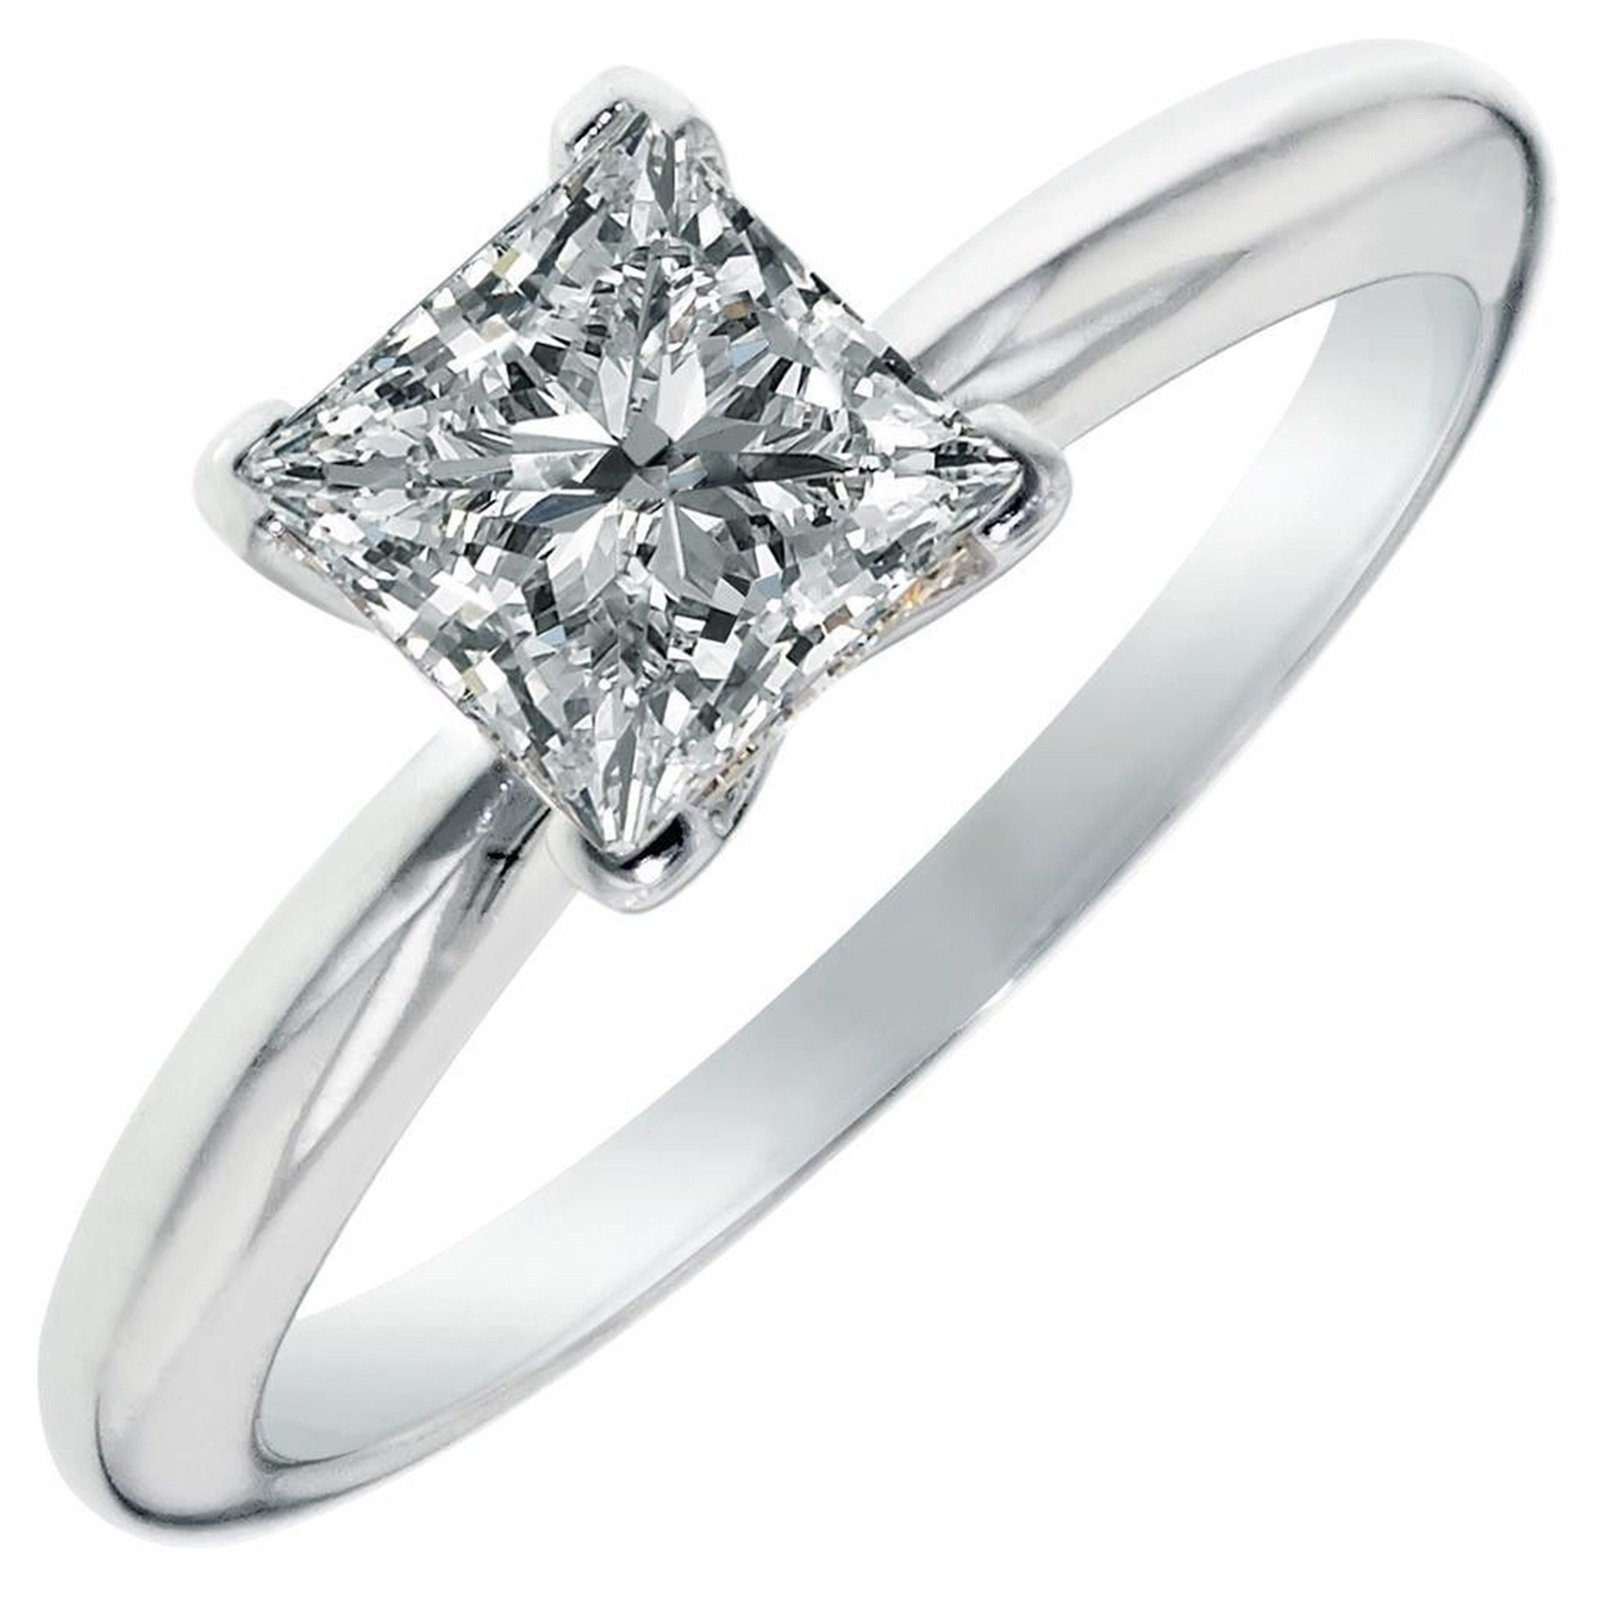 2.0 ct Brilliant Princess Cut Solitaire Highest Quality Lab Created White Sapphire Ideal VVS1 D 4-Prong Engagement Wedding Bridal Promise Anniversary Ring Solid Real 14k White Gold for Women